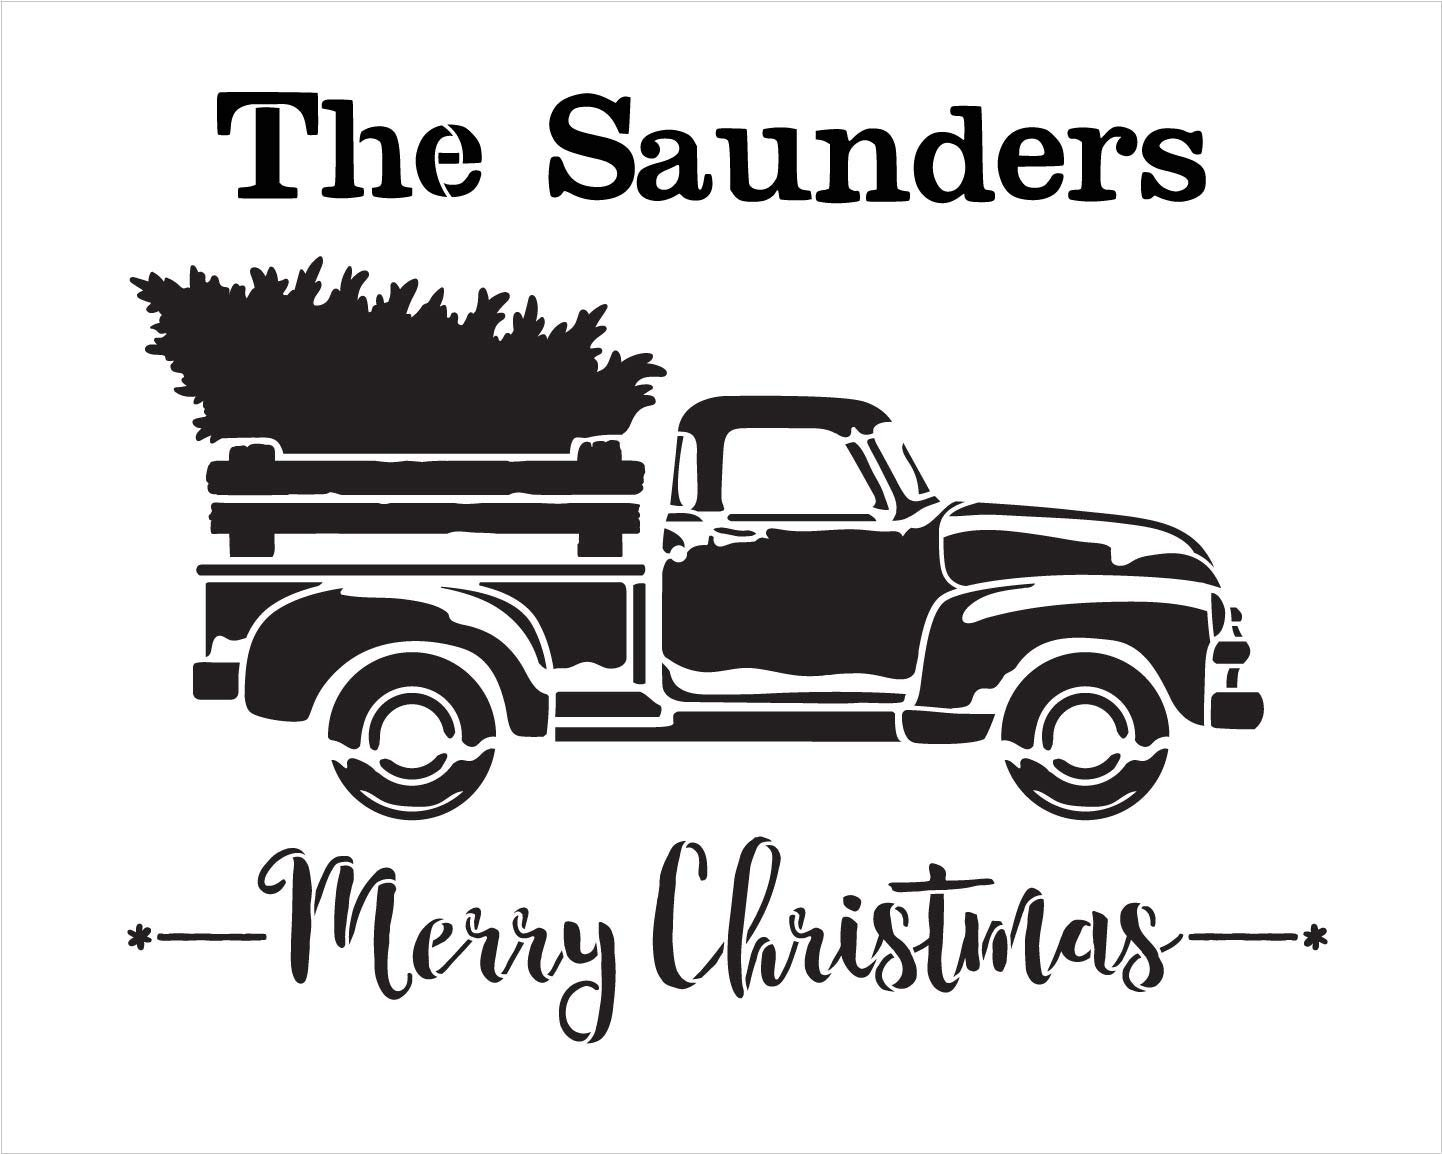 Personalized Merry Christmas Stencil with Red Truck & Tree   Custom Family Name   DIY Holiday Home Decor   Rustic Vintage Word Art   Craft & Paint Wood Signs   Reusable Mylar Template   Select Size